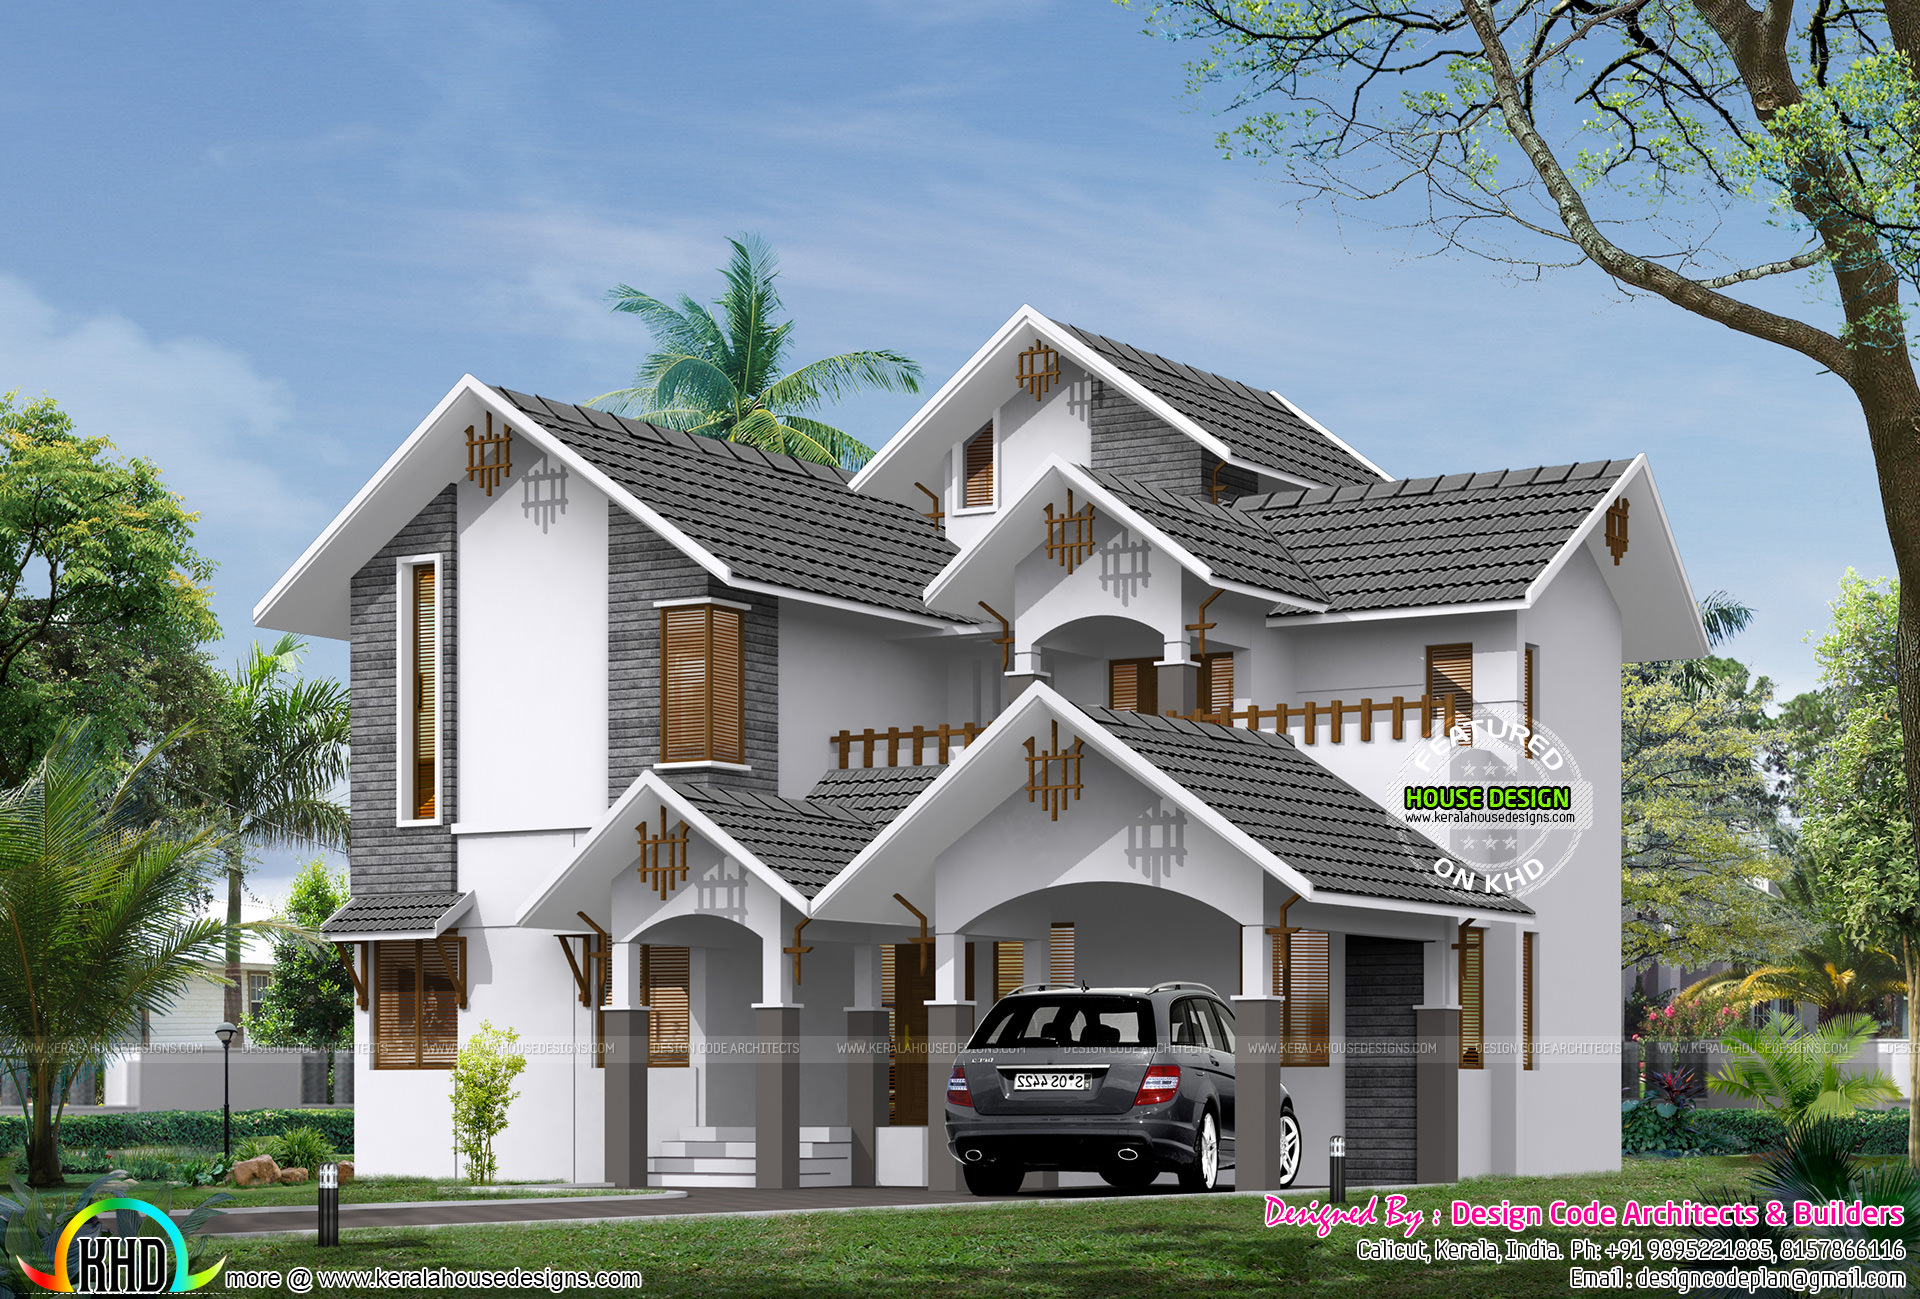 Sloped roof 2900 square feet 4 bedroom home kerala home for Sloped roof house plans in india